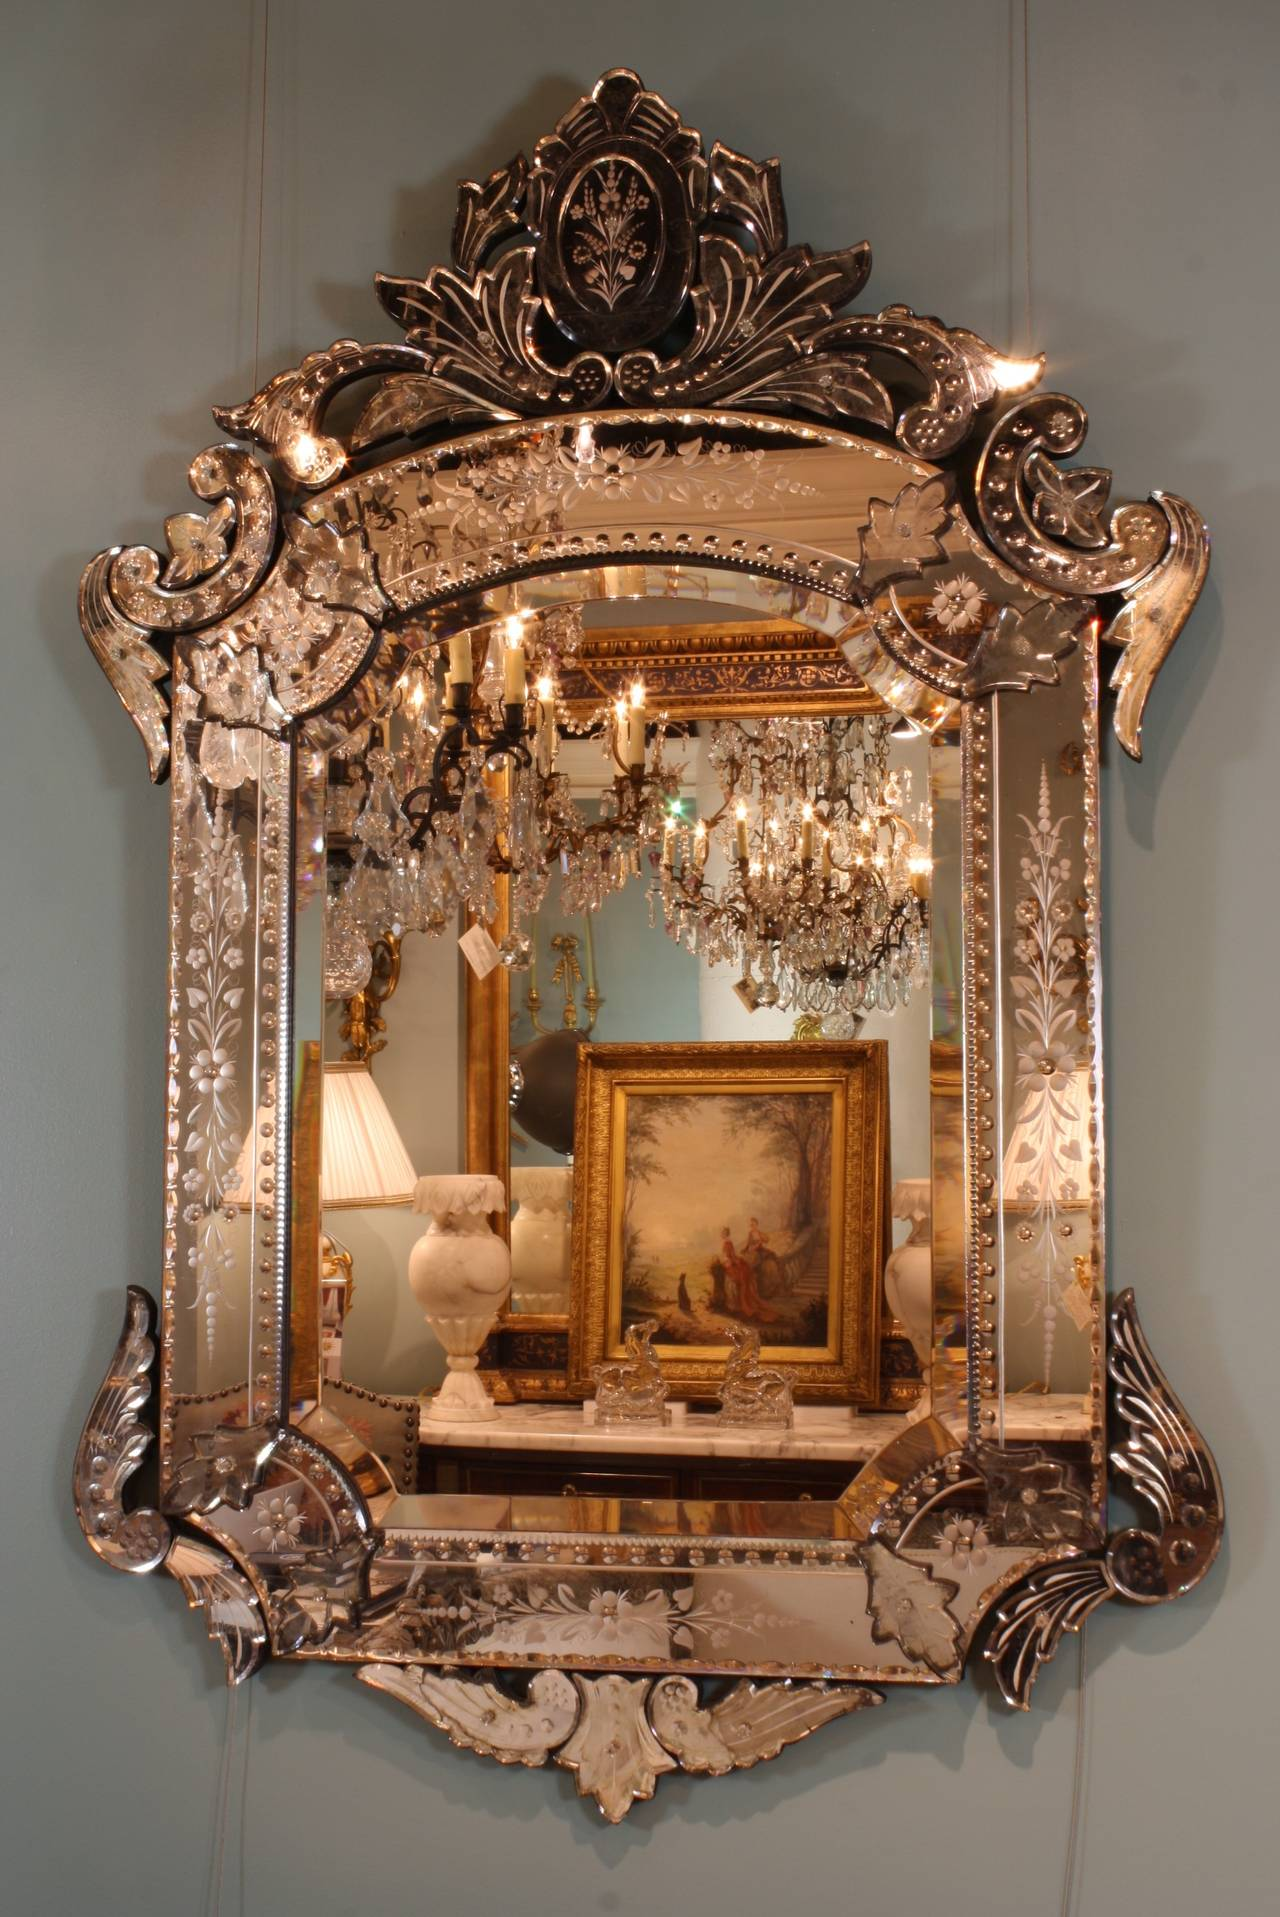 "A beautifully-detailed Venetian mirror in the Rococo style with bevelled glass, detailed cartouche, ""C"" scrolls, acanthus leaves, etched floral designs and bubble designs."